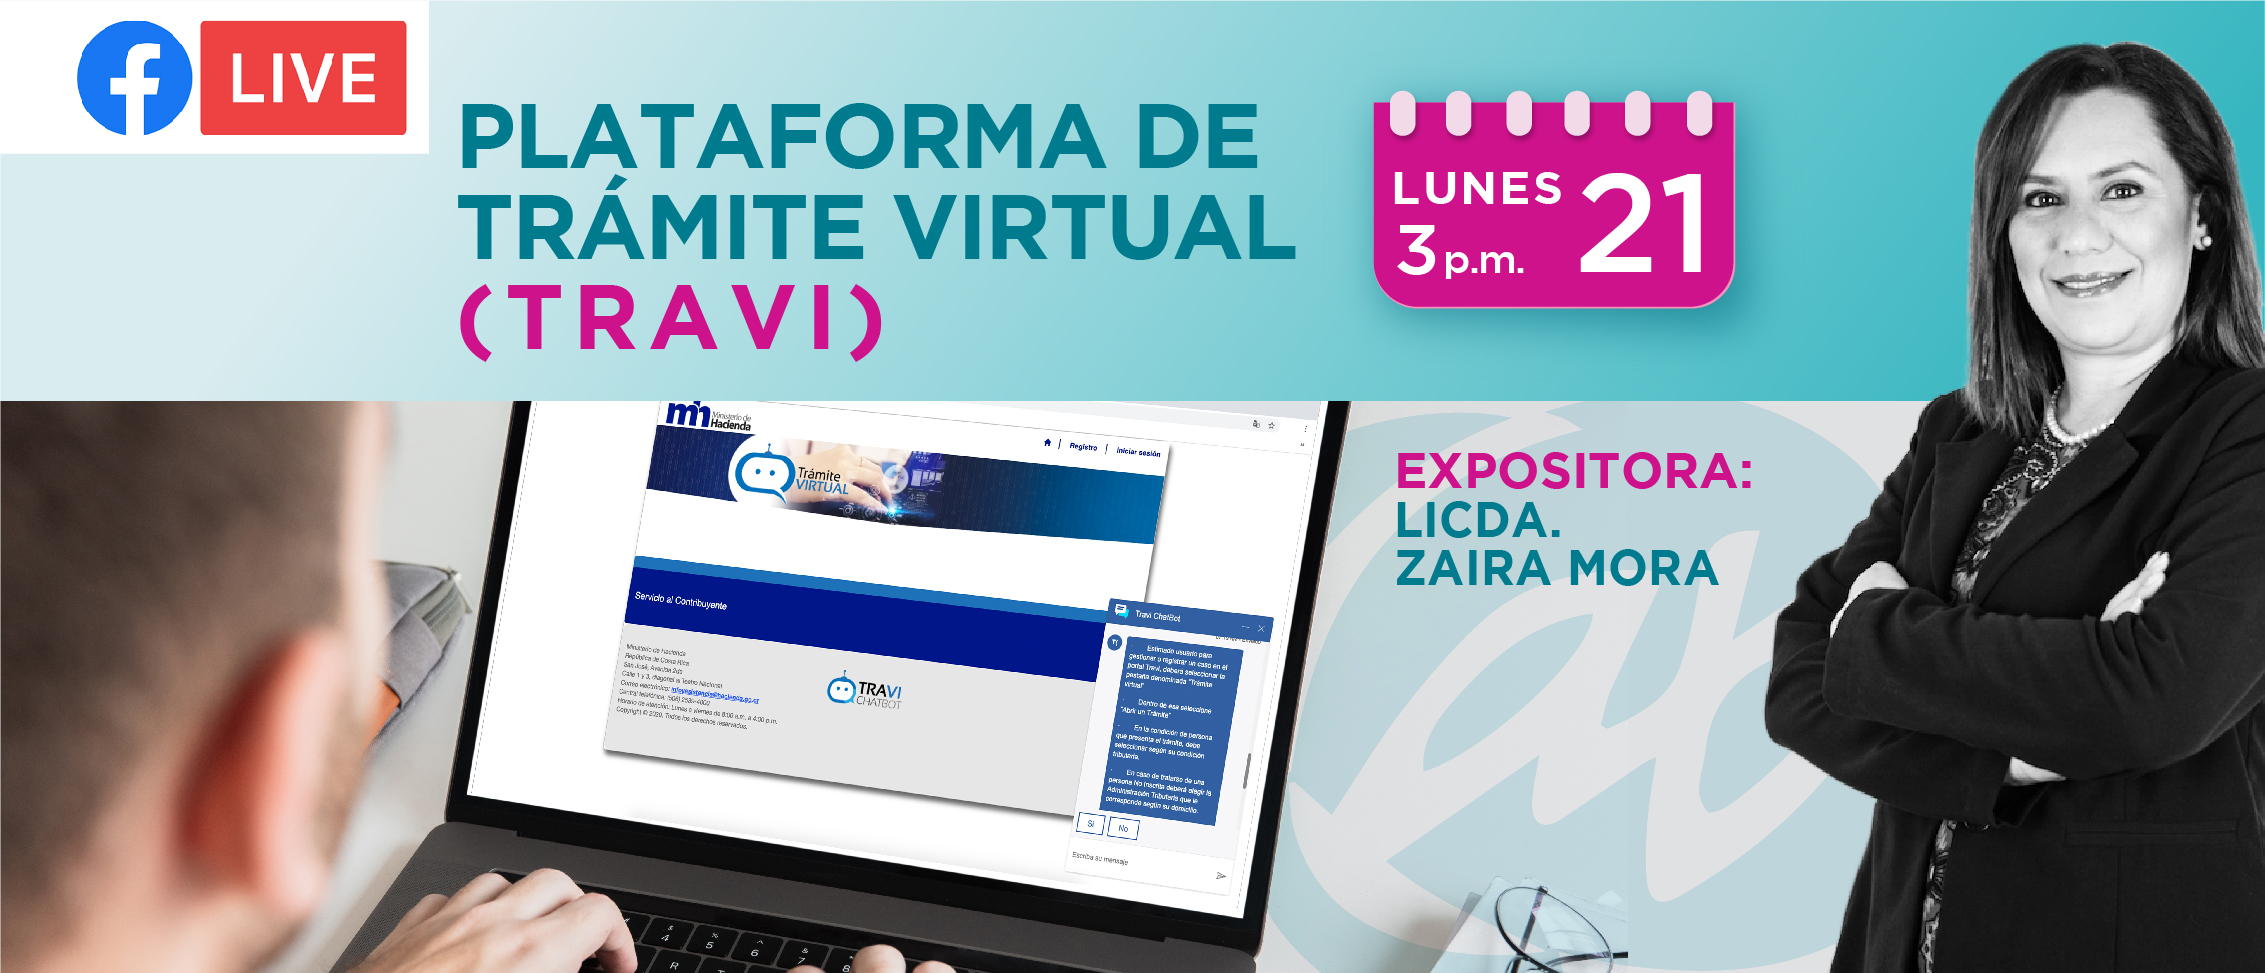 FB LIVE: PLATAFORMA DE TRÁMITE VIRTUAL (TRAVI)